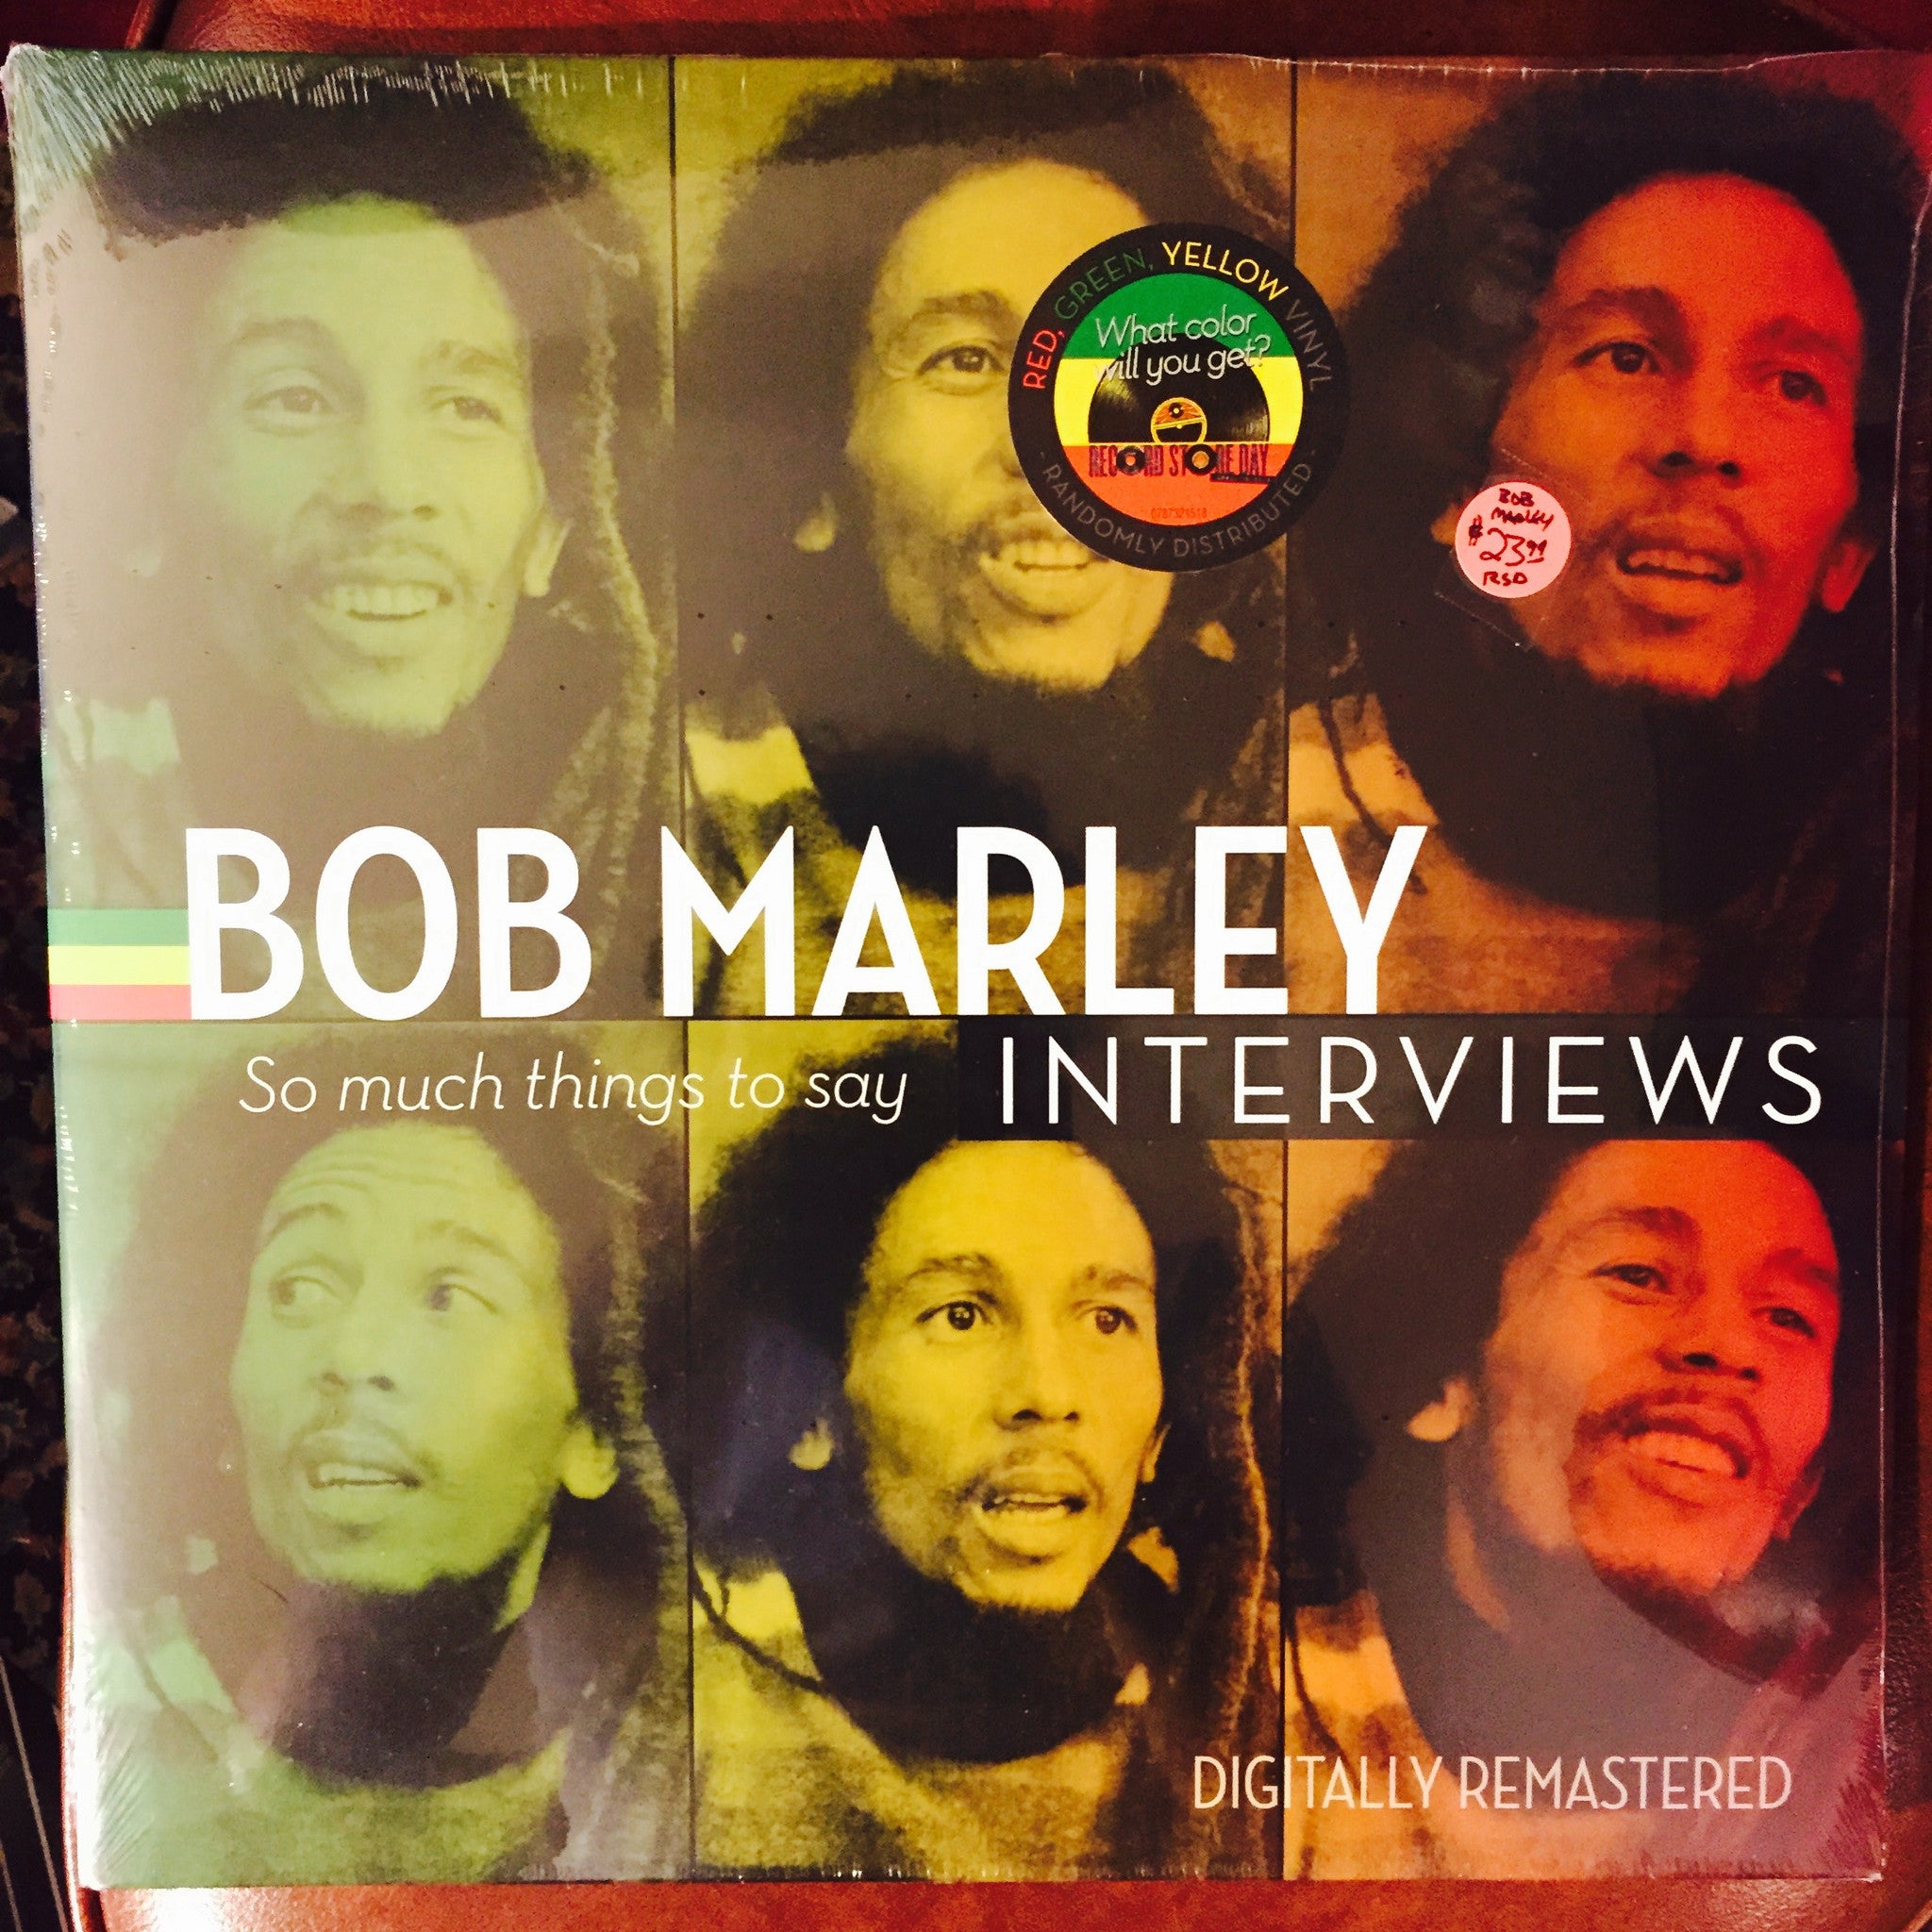 Bob Marley - Interview: So Much Things To Say LP (RSD 2015)